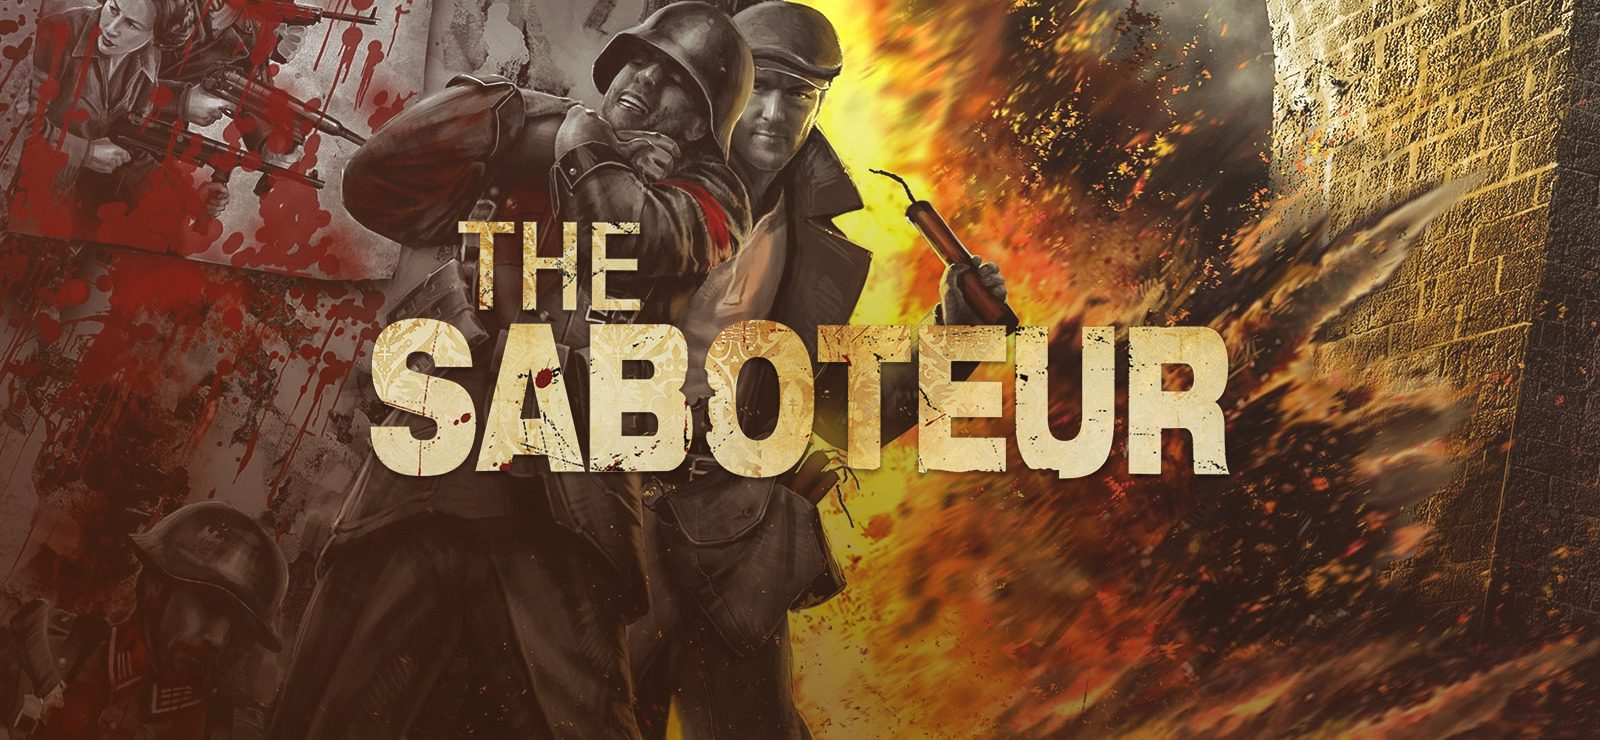 the-saboteure284a2-free-download-4887300